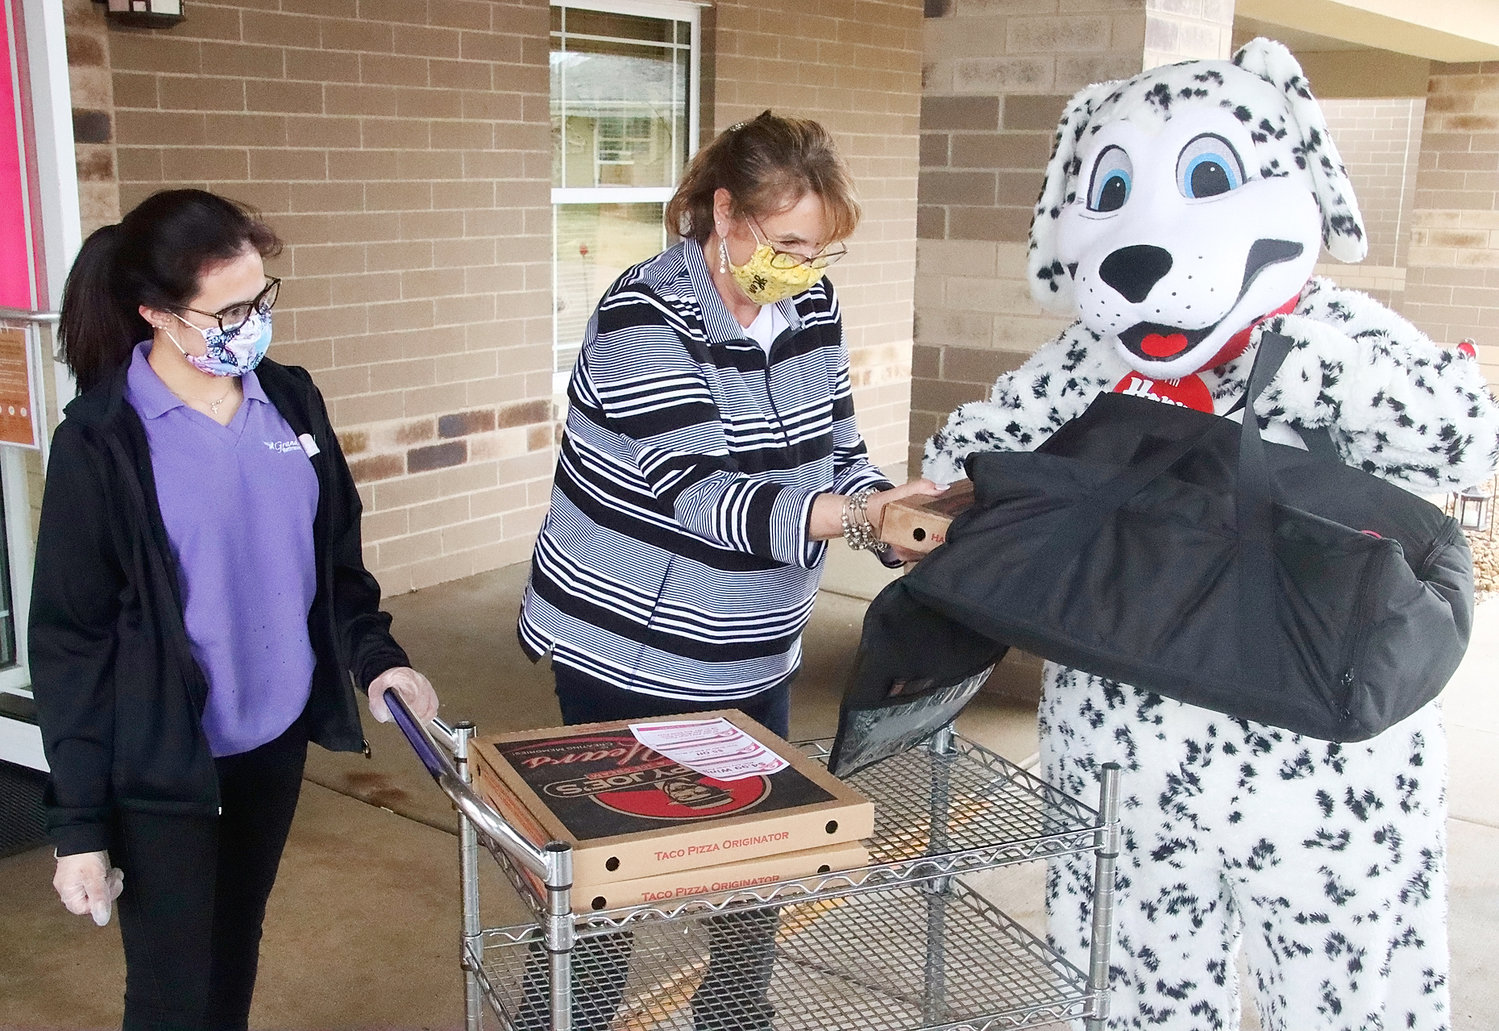 Grand Haven employees Masie Knutsen and Jennifer Maas greet Happy the Dog (aka Alaina Woods, right) outside Grand Haven and are happy to take 14 sausage and pepperoni pizzas for isolated residents.